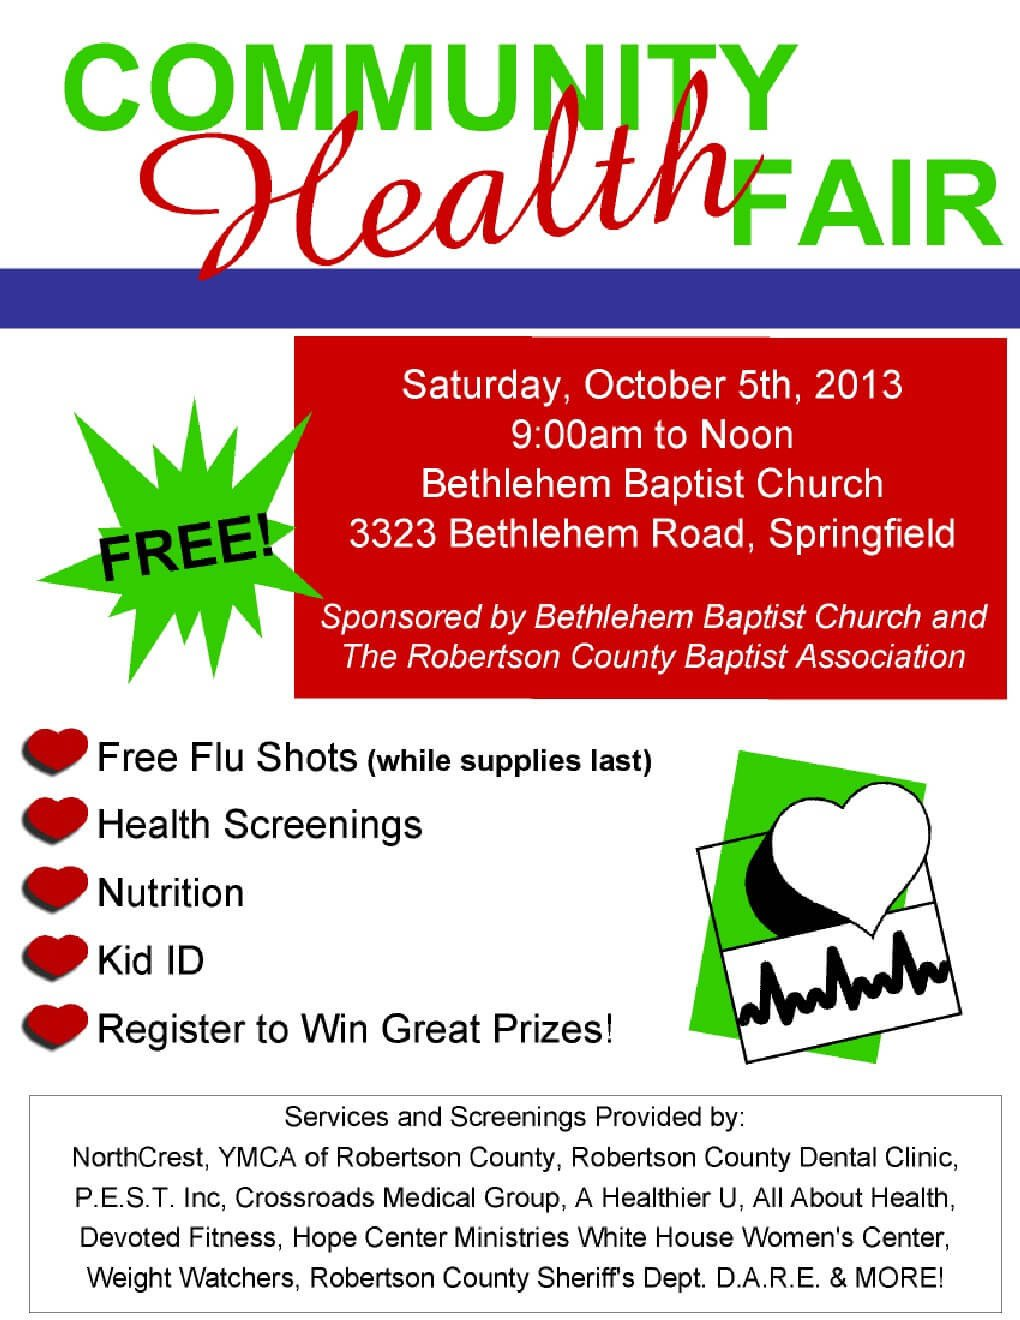 Health Fair Flyer Template Free Free Munity Health Fair October 5th